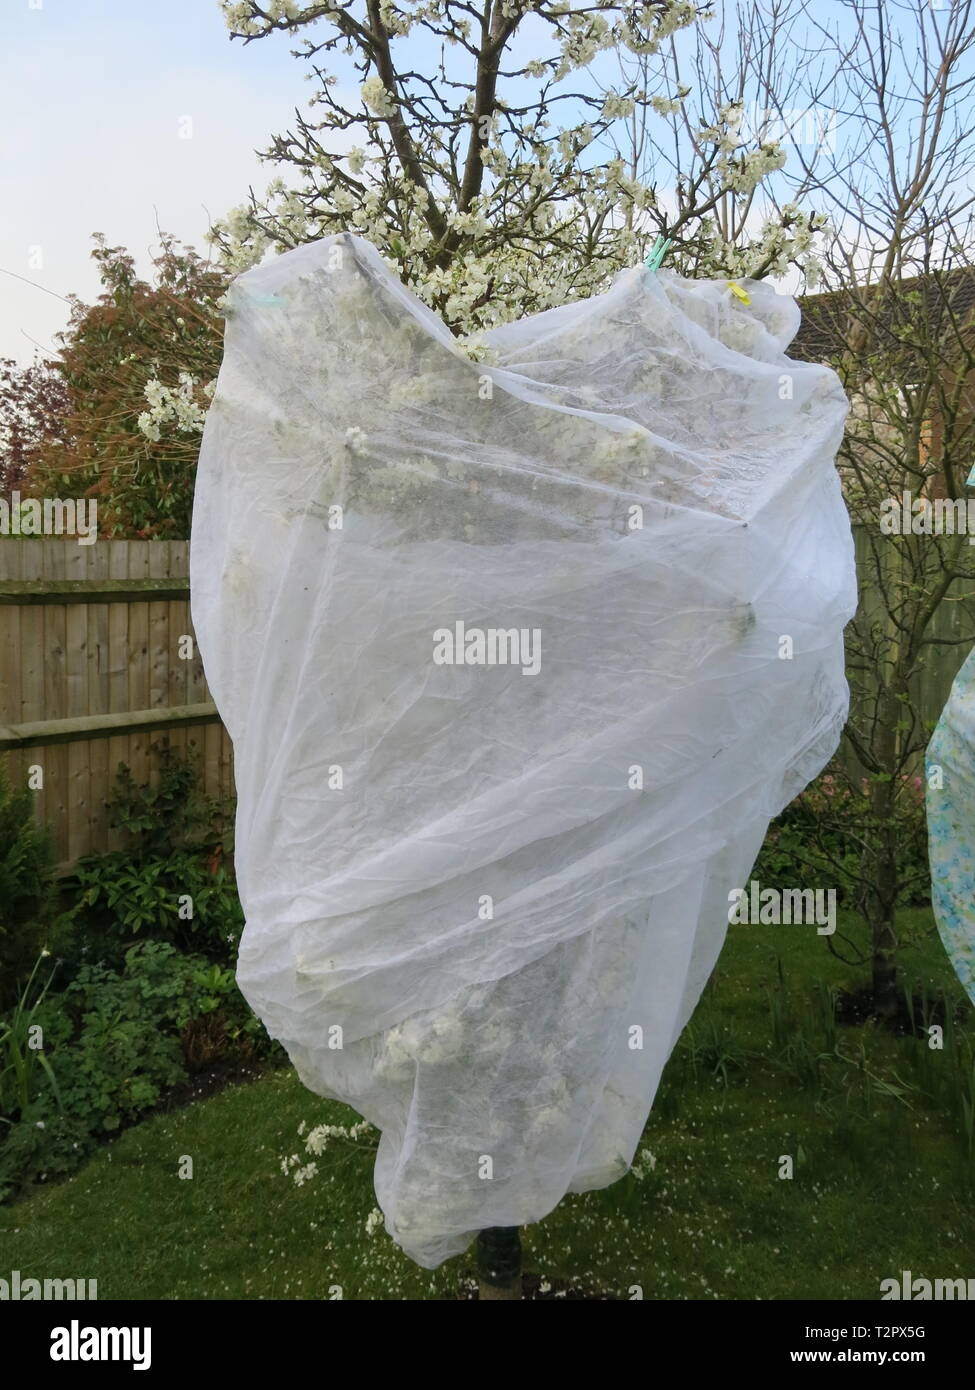 Horticultural fleece is used to protect the blossom of a fruit tree in an English garden; gardeners beware of a sharp April frost in 2019. - Stock Image